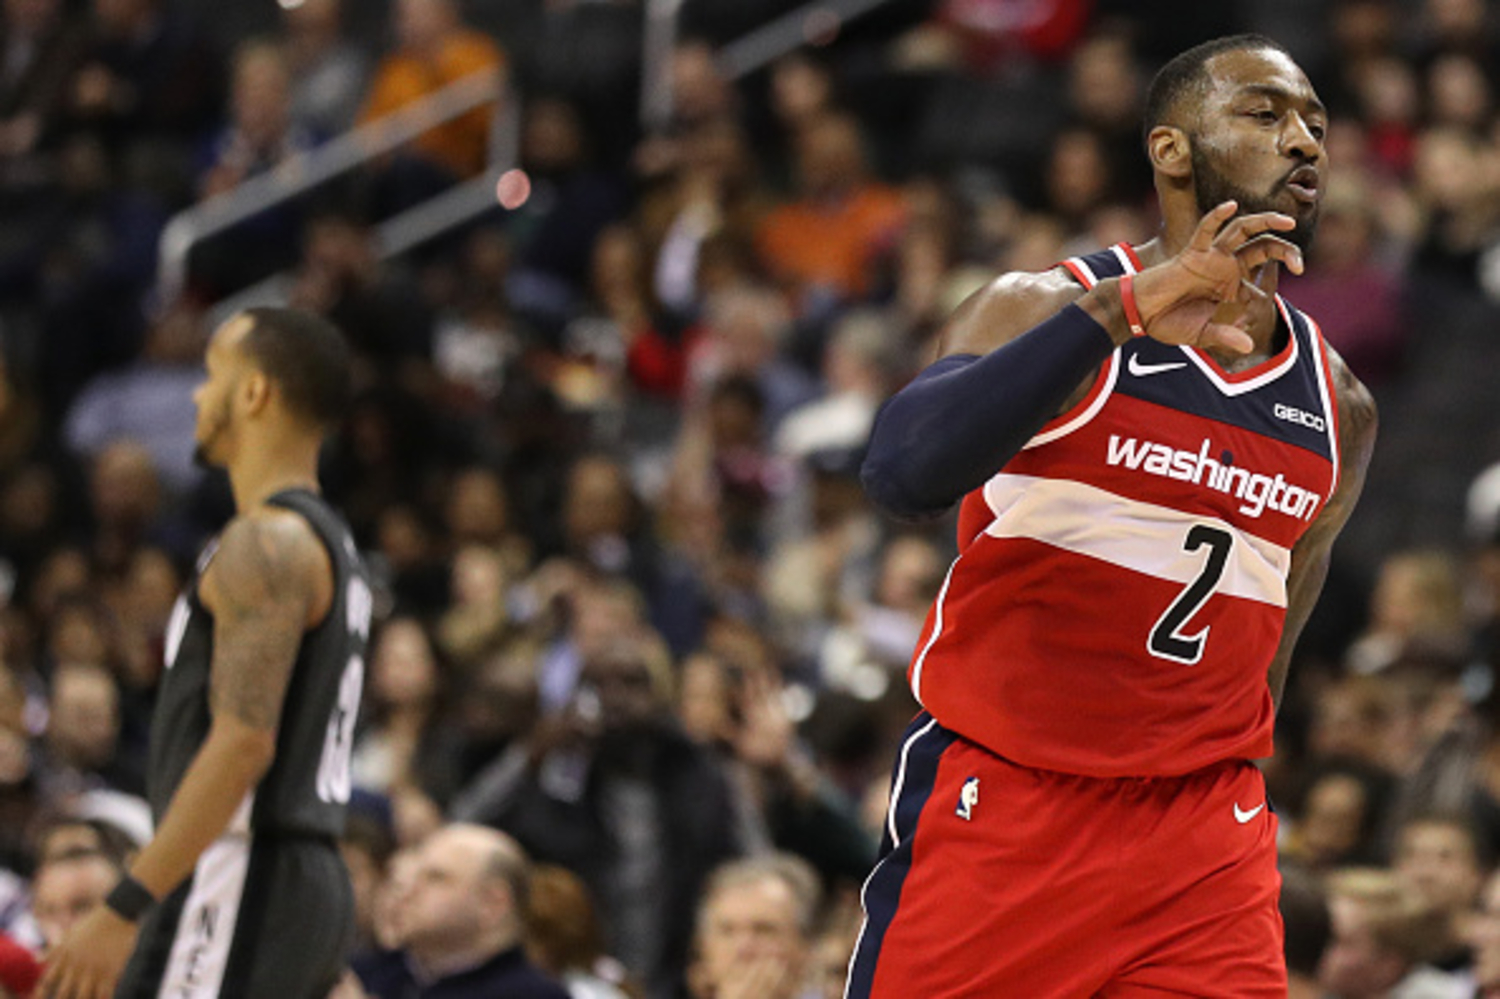 John Wall is gearing up for his return to the NBA